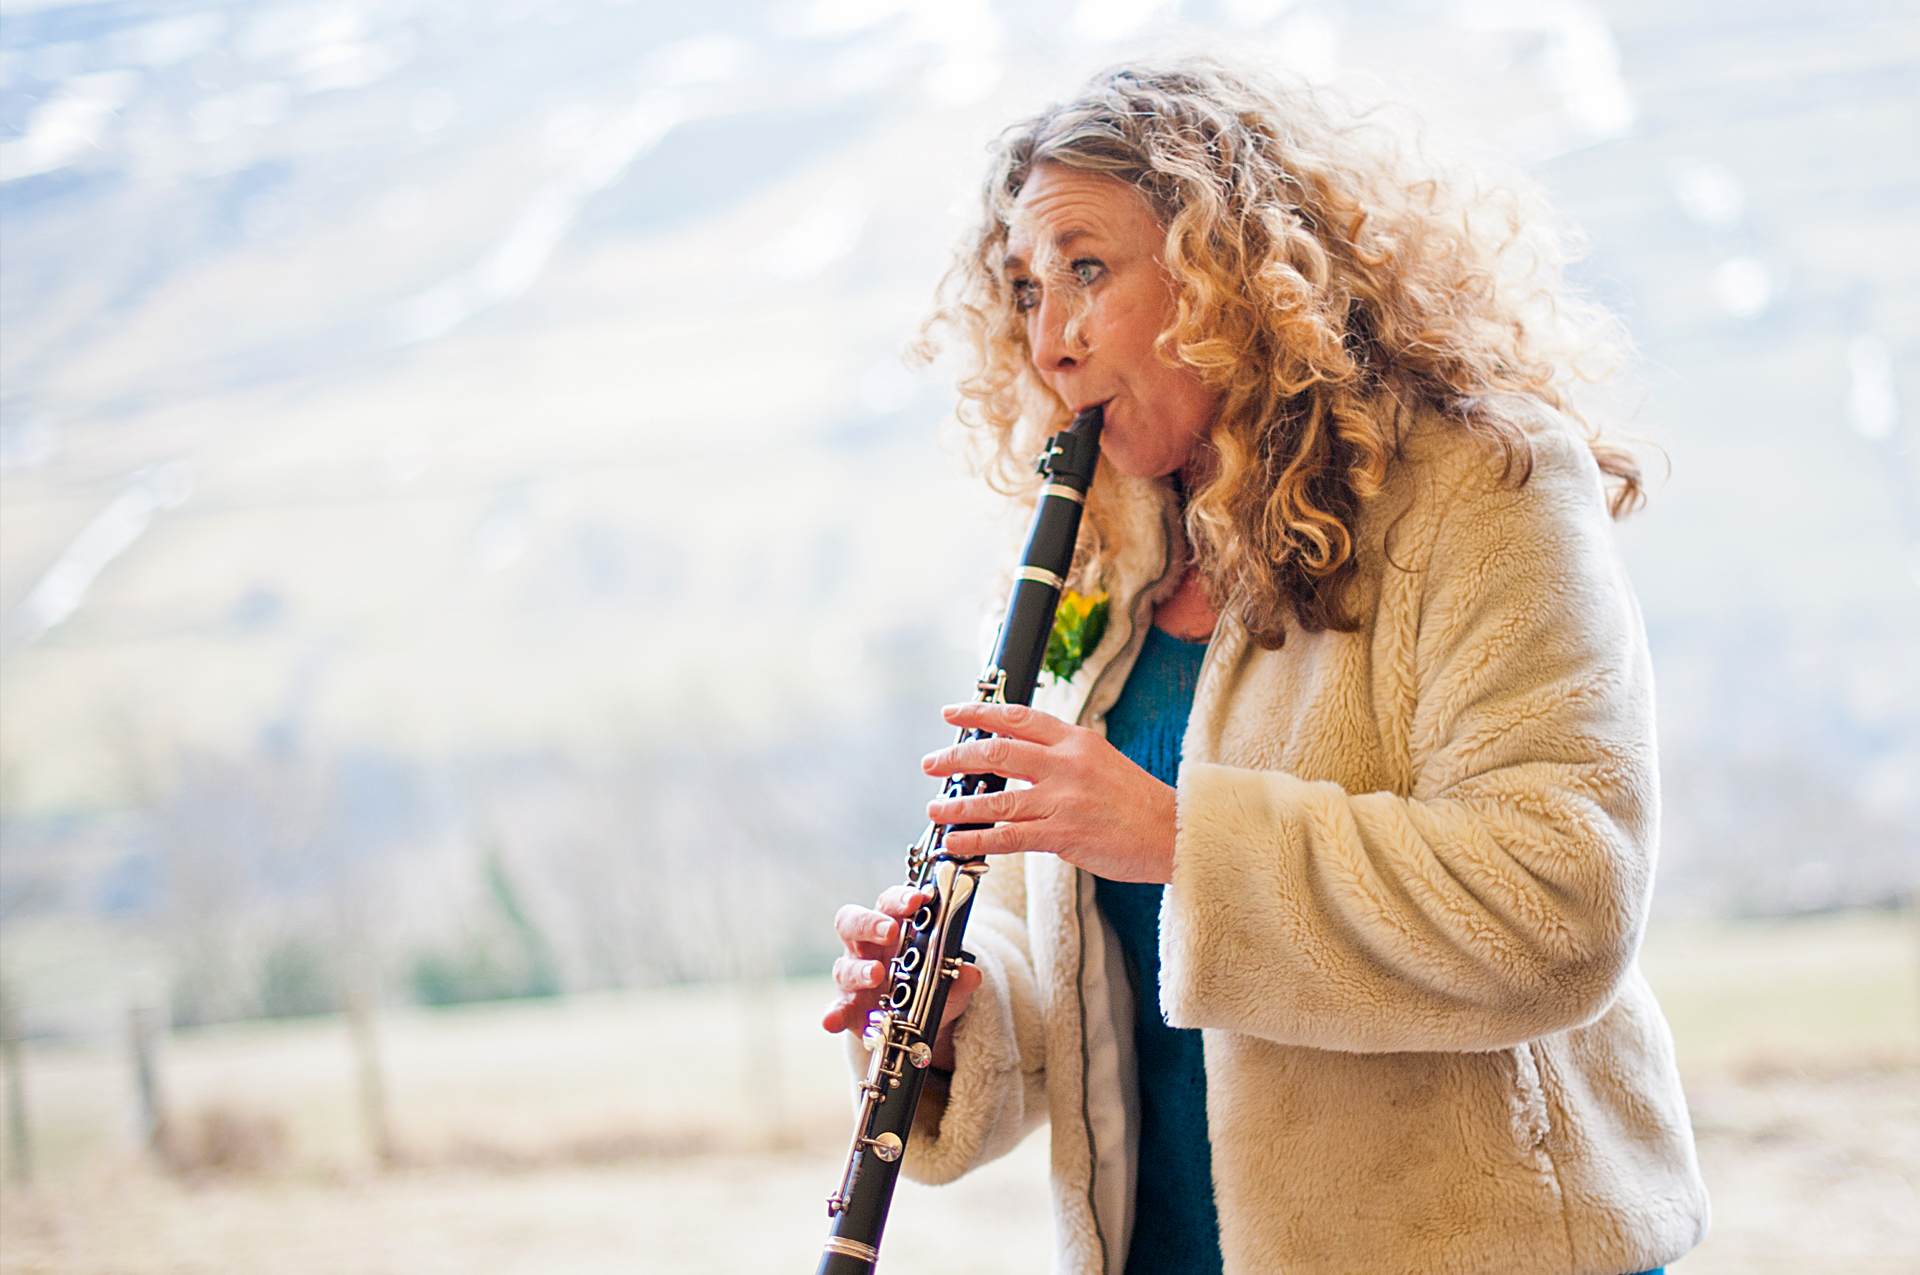 Catherine Shrubshall Musician and Educationalist Clarinet and Saxophone